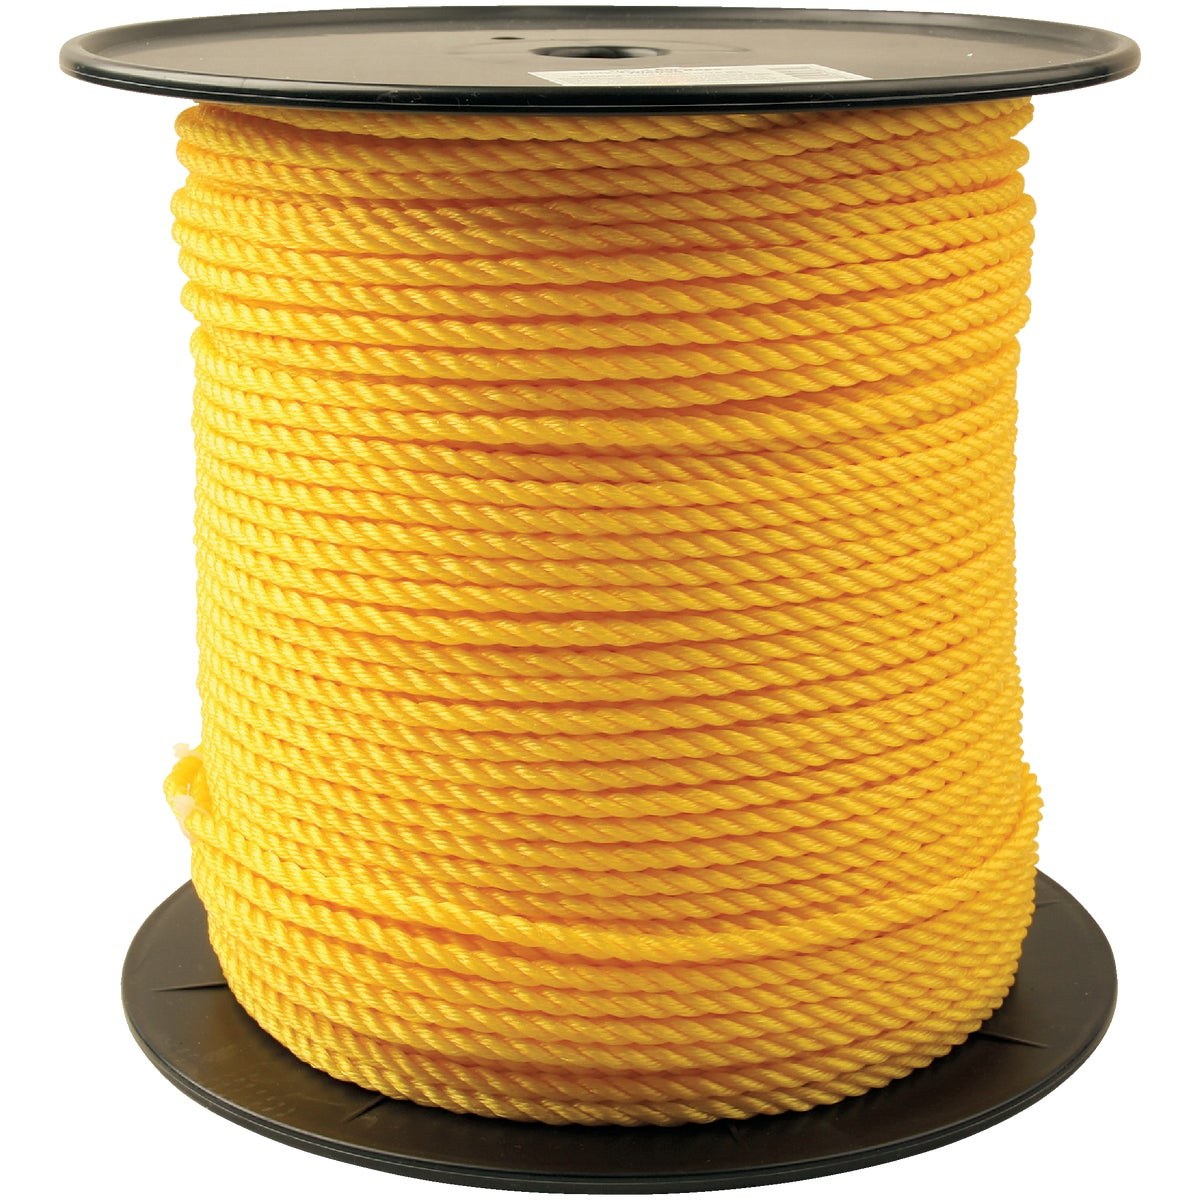 "1/4""X600' POLY TWST ROPE - 700030 by Do it Best"